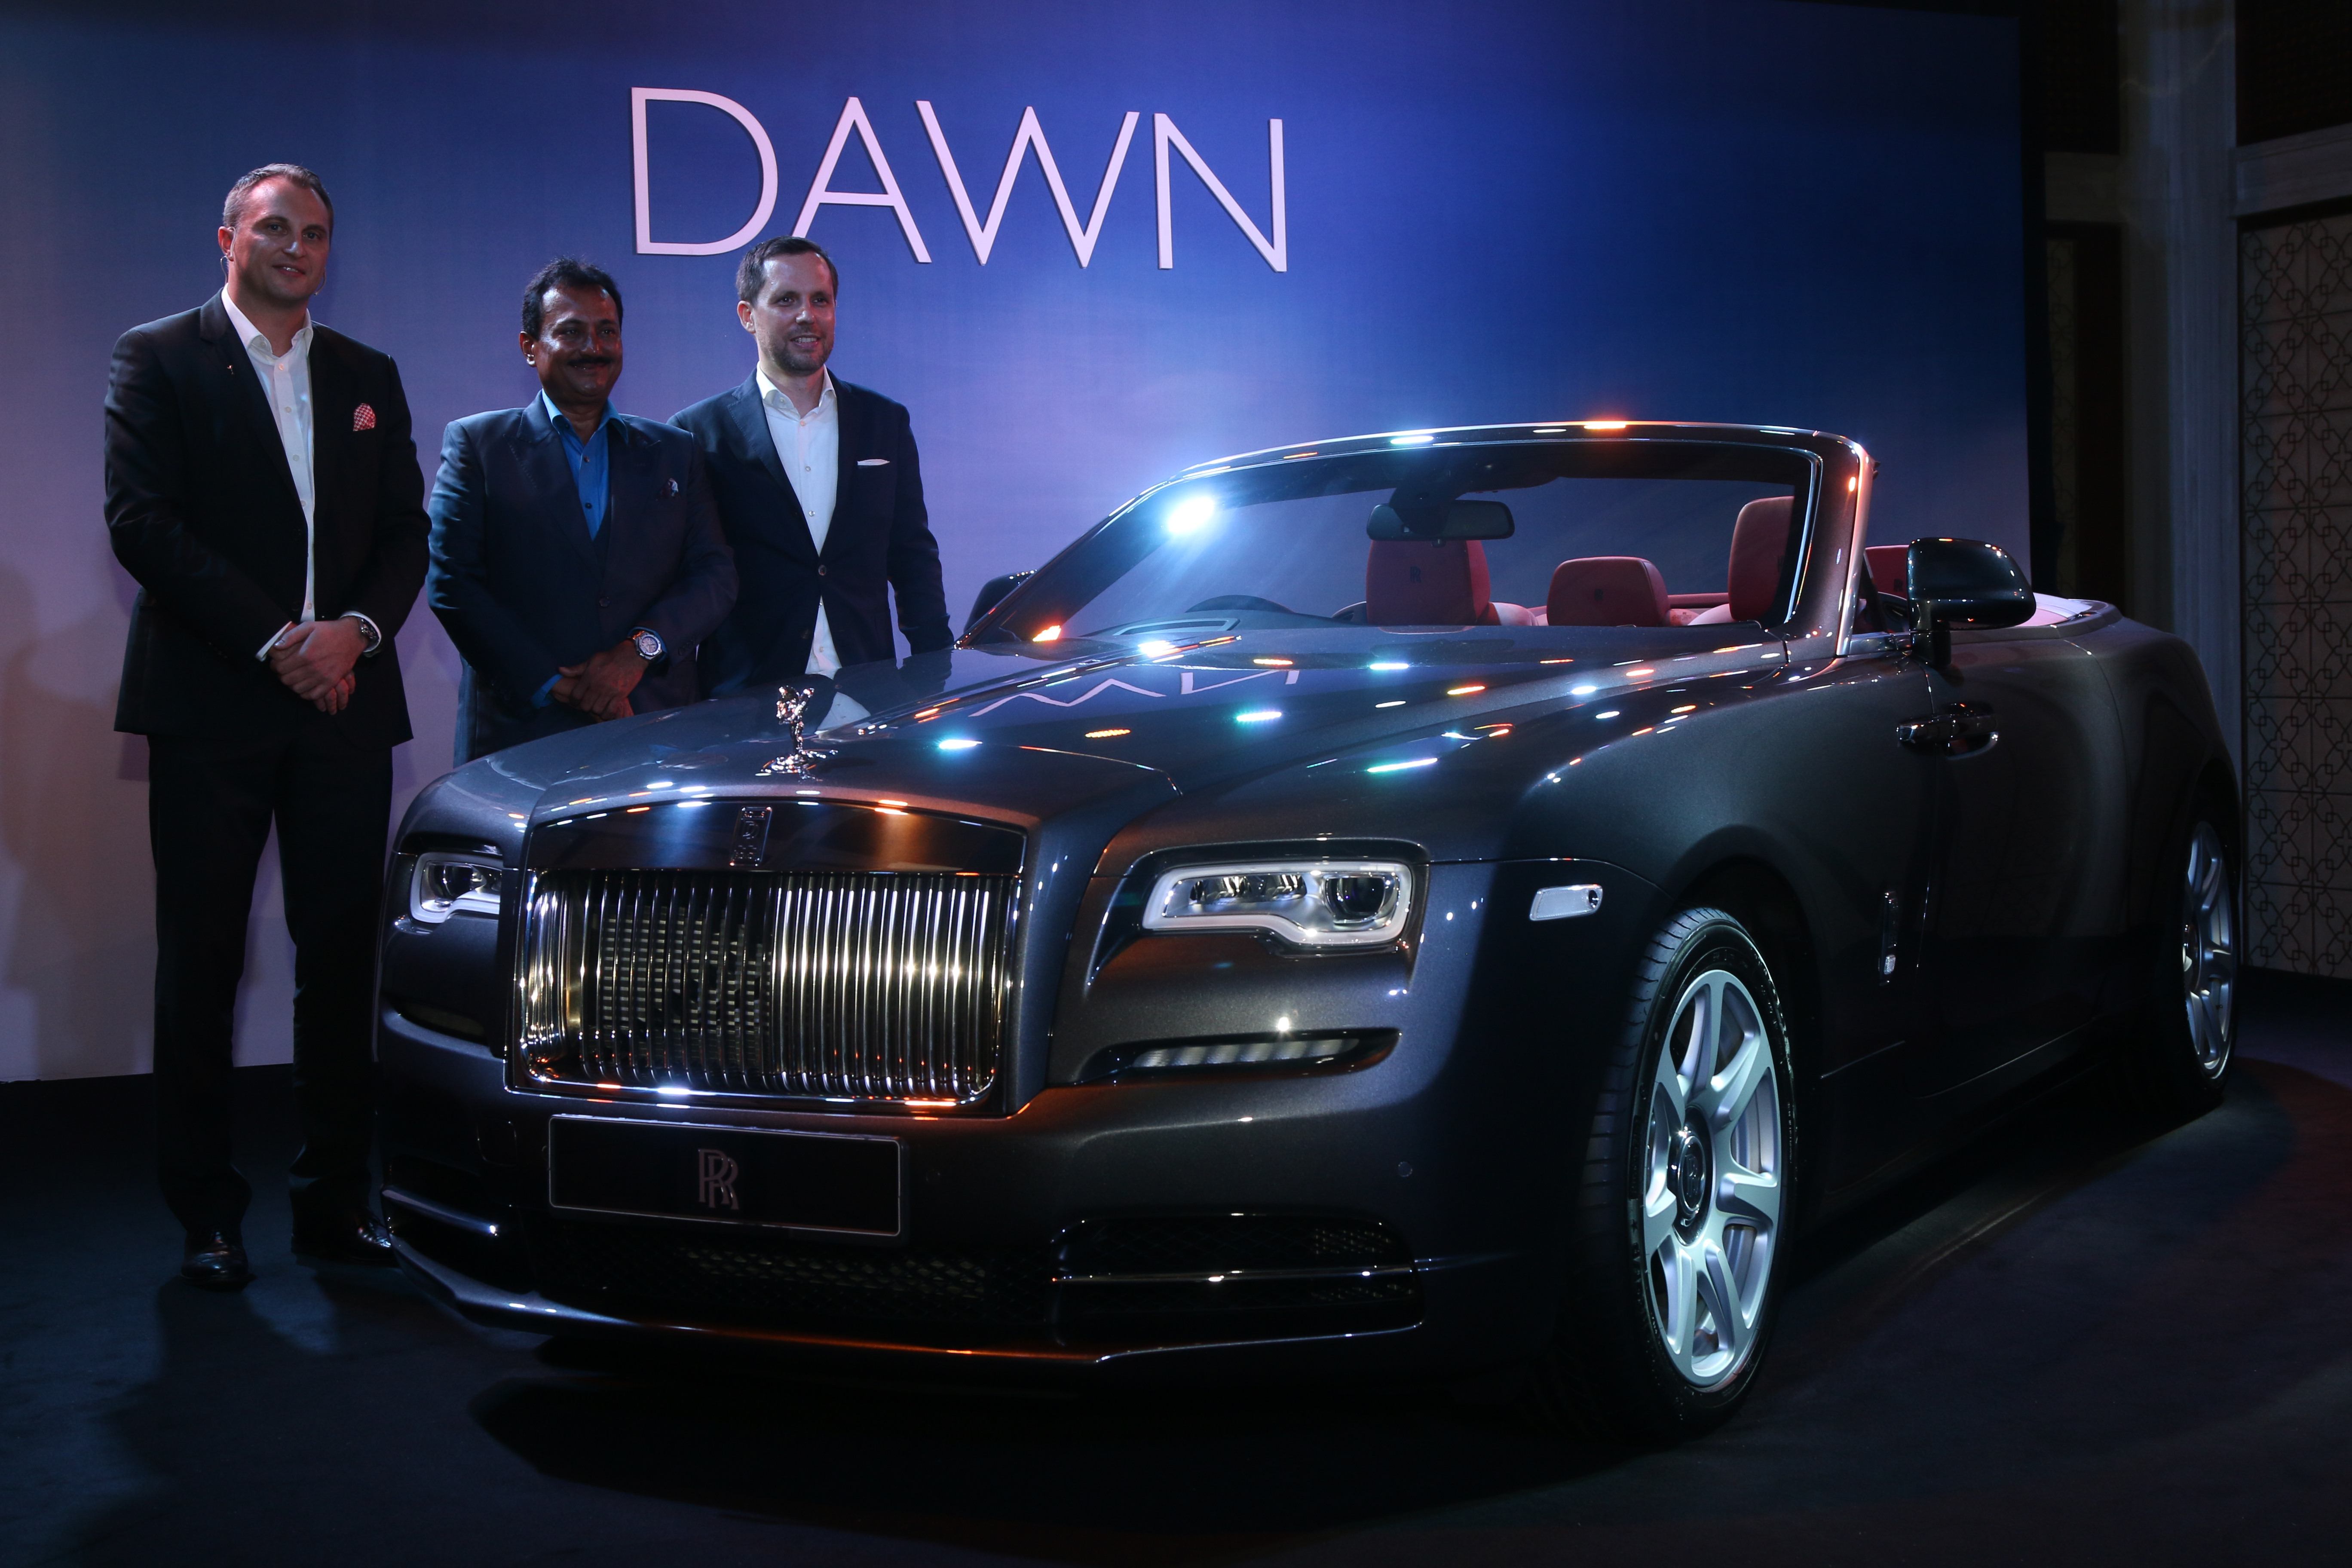 Rolls-Royce Dawn Launch – 24th June 2016